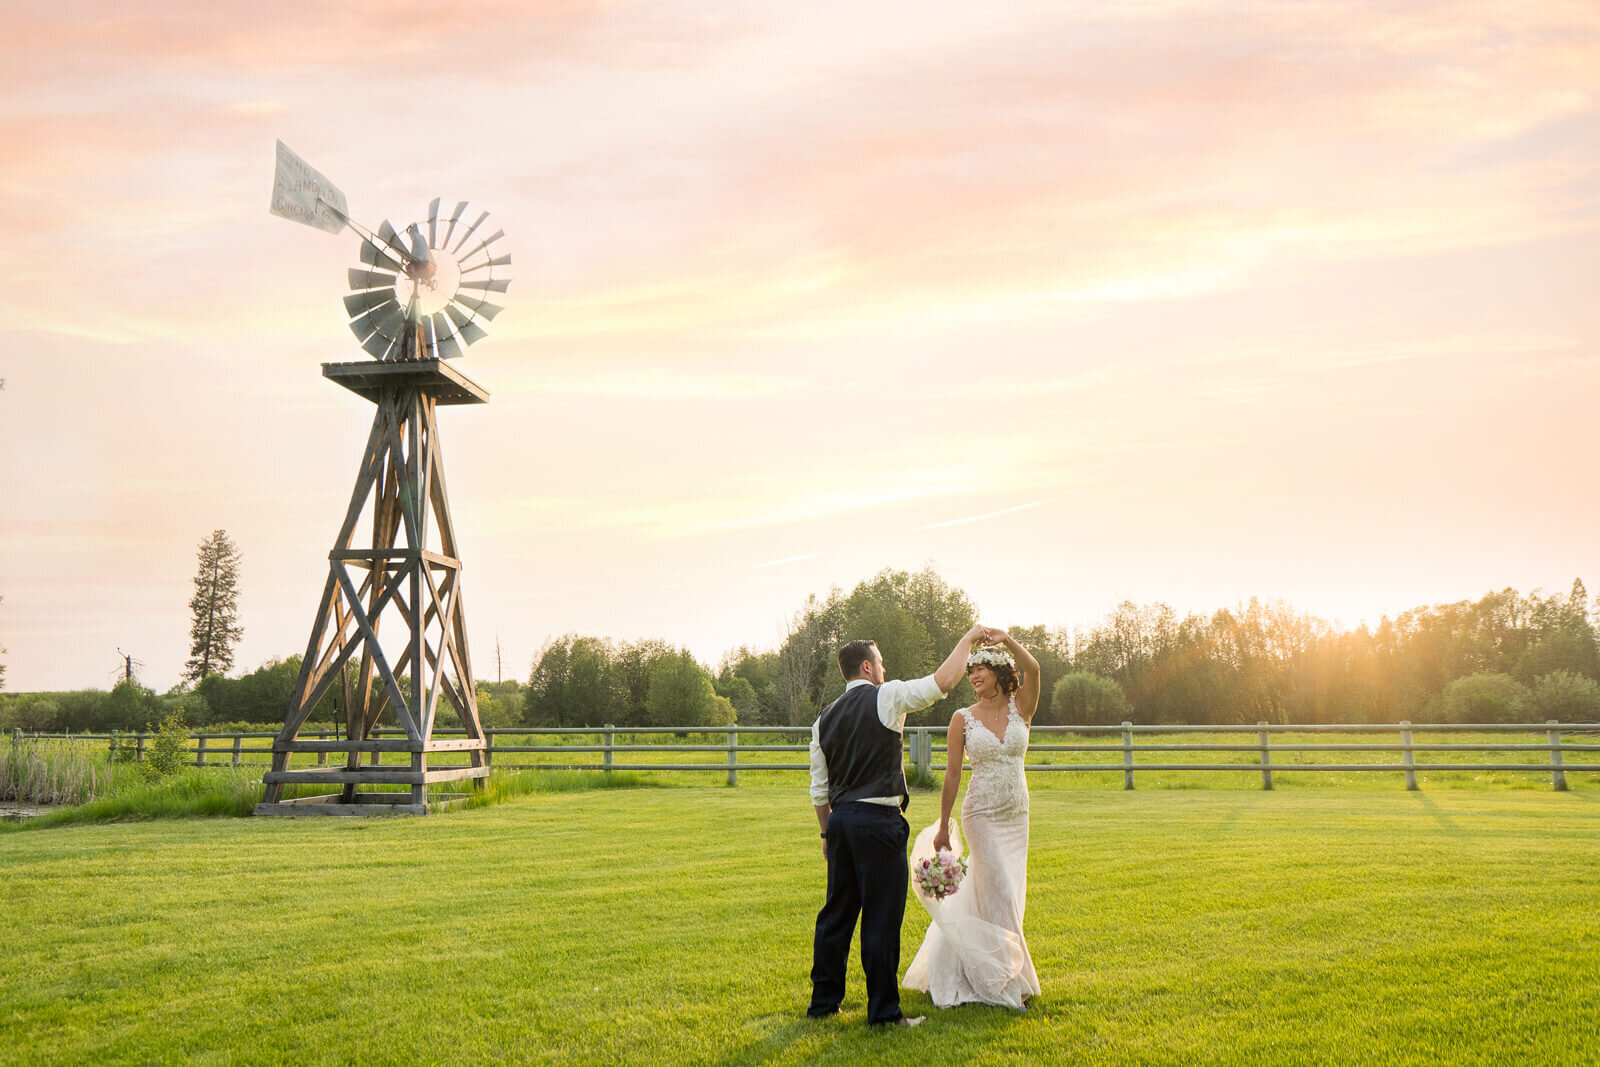 Montana-Wedding-Venue275